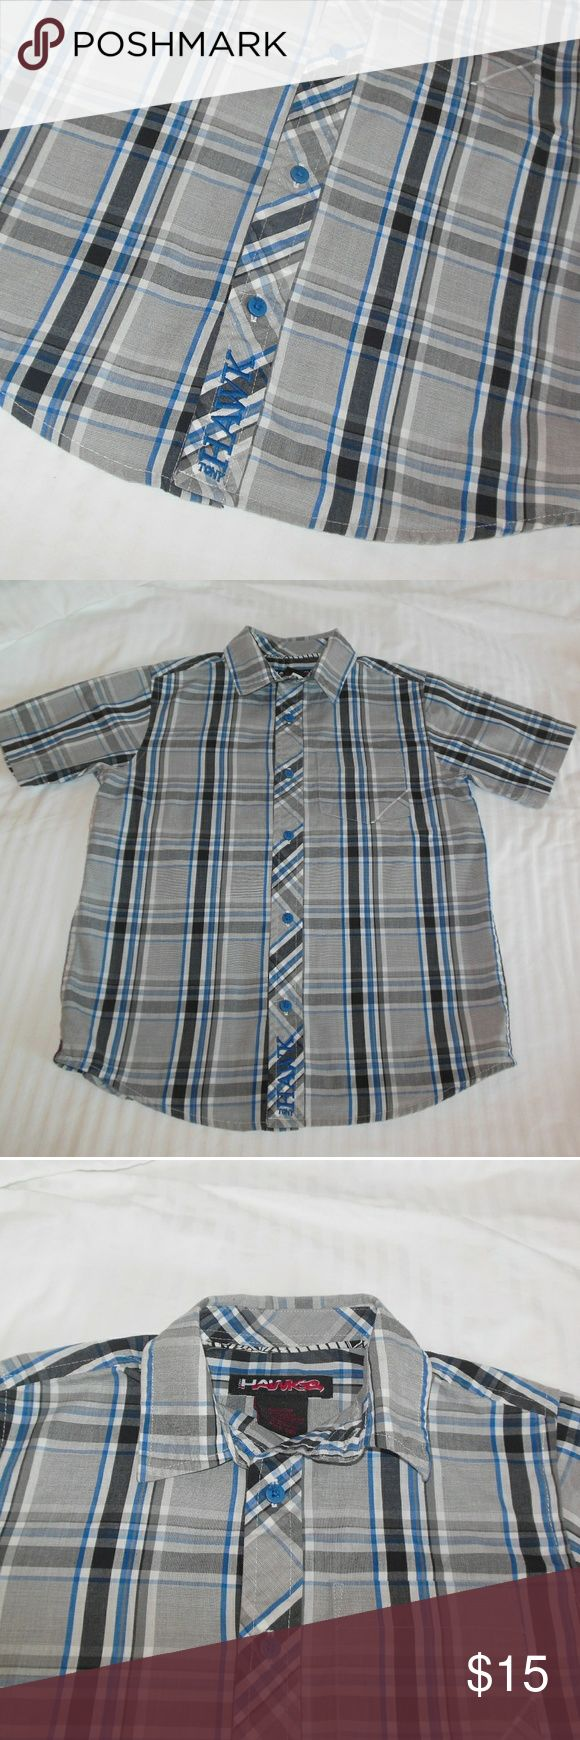 Tony Hawk Plaid Button Down Shirt LN Size S-Boys Up for your consideration here is a very gently used button-down plaid shirt made by Tony Hawk. It is tagged a S (8) Skate or die dude! It is in excellent used condition and is looking for a great new home. Make sure to browse my closet for more skater type clothing for boys/teens. Add another item and receive 10% off, add 3 items or more to receive 15% off. Remember bundling saves you money :-) Tony Hawk Shirts & Tops Button Down Shirts